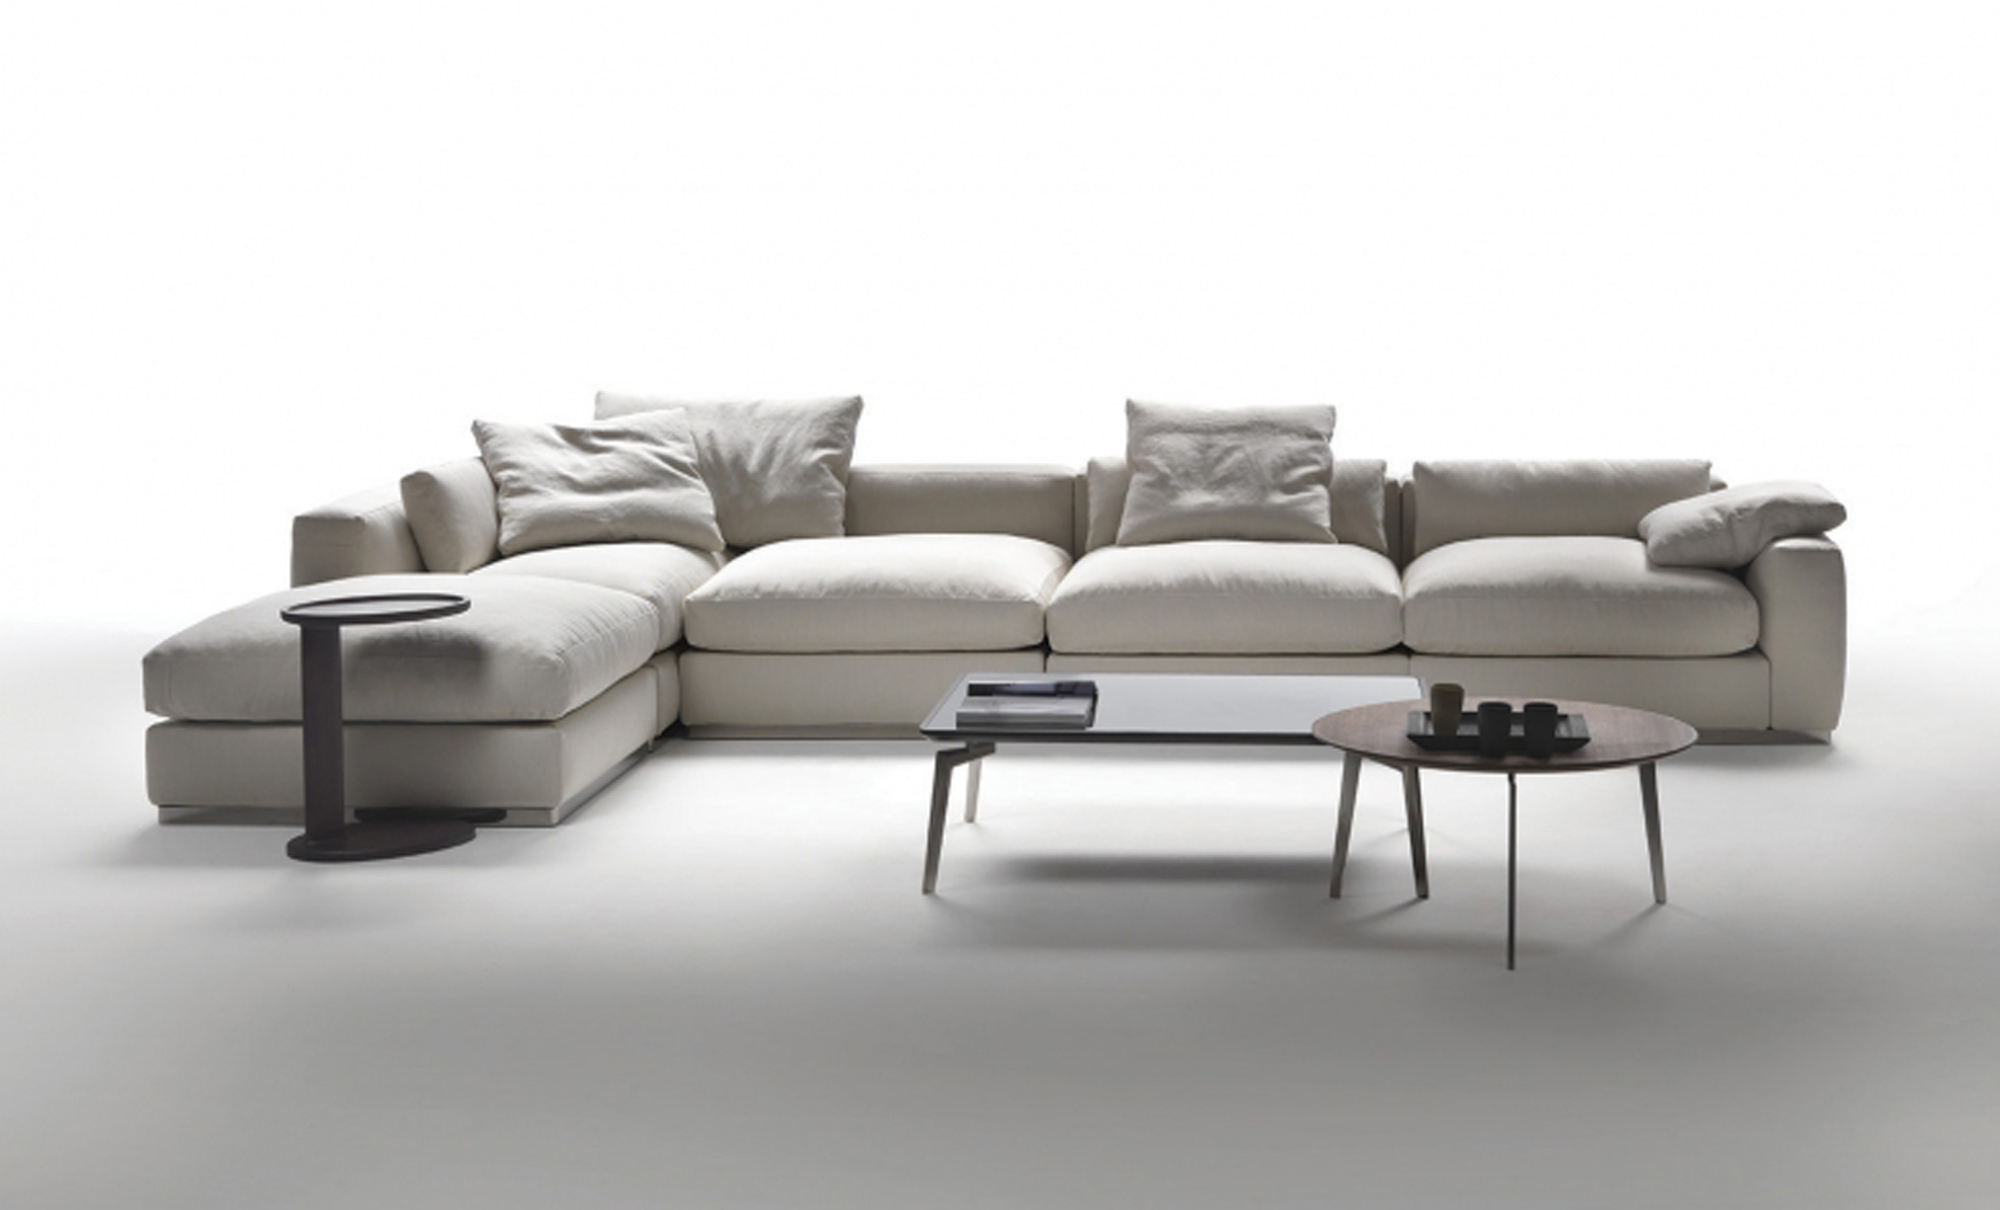 pictures of sofas bailey sofa dfs beauty fanuli furniture